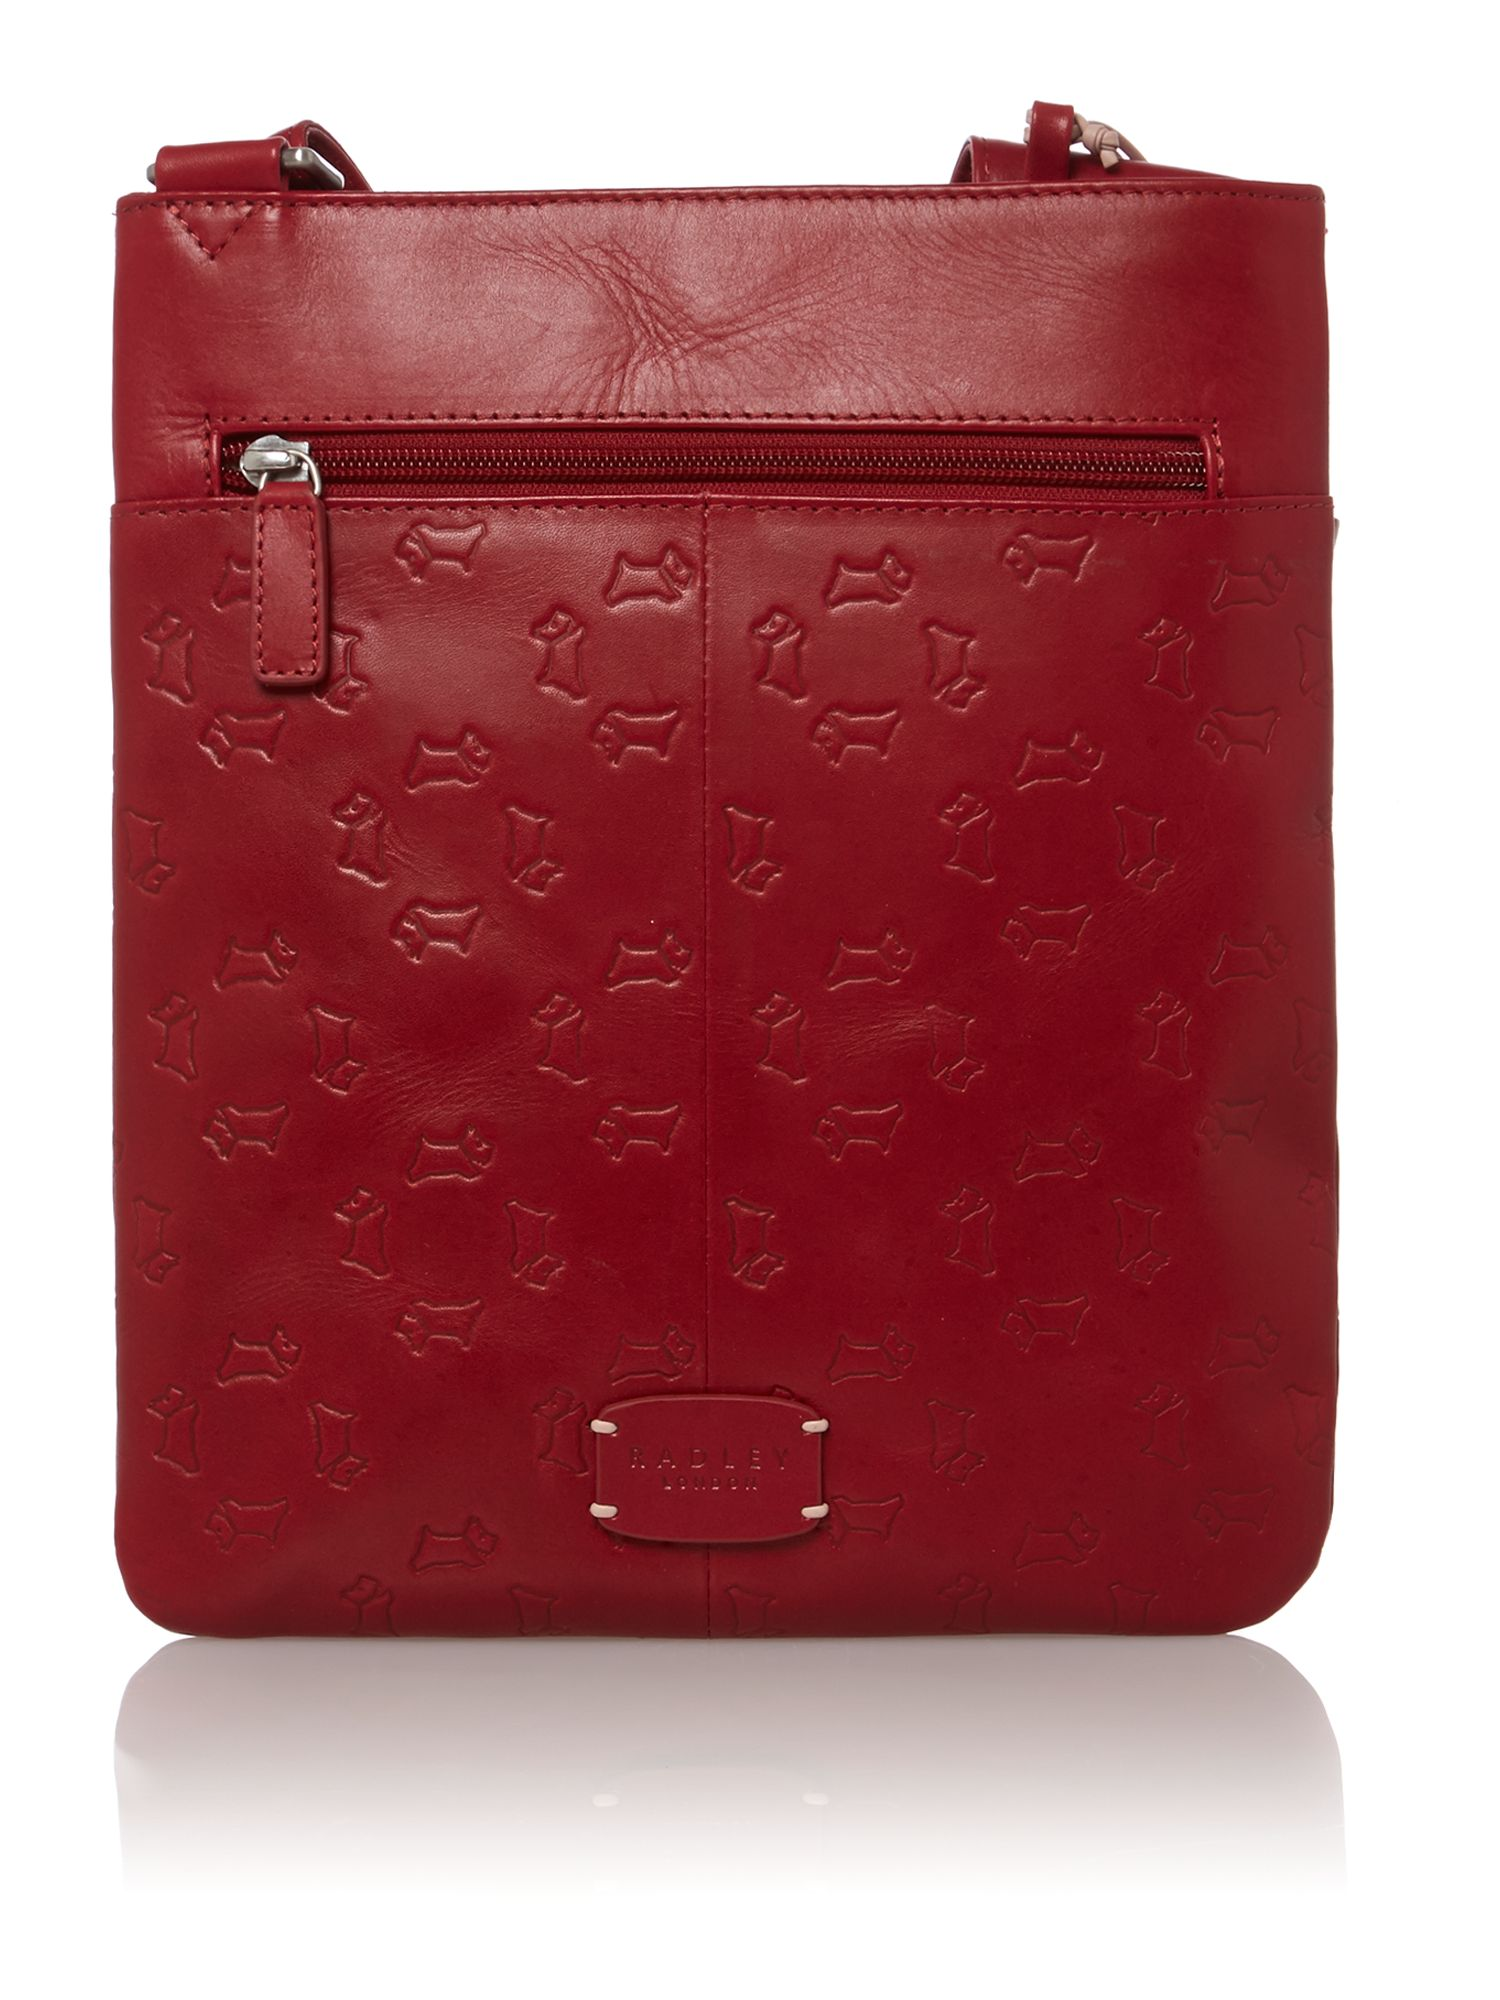 Abbey road red medium ziptop xbody leather bag